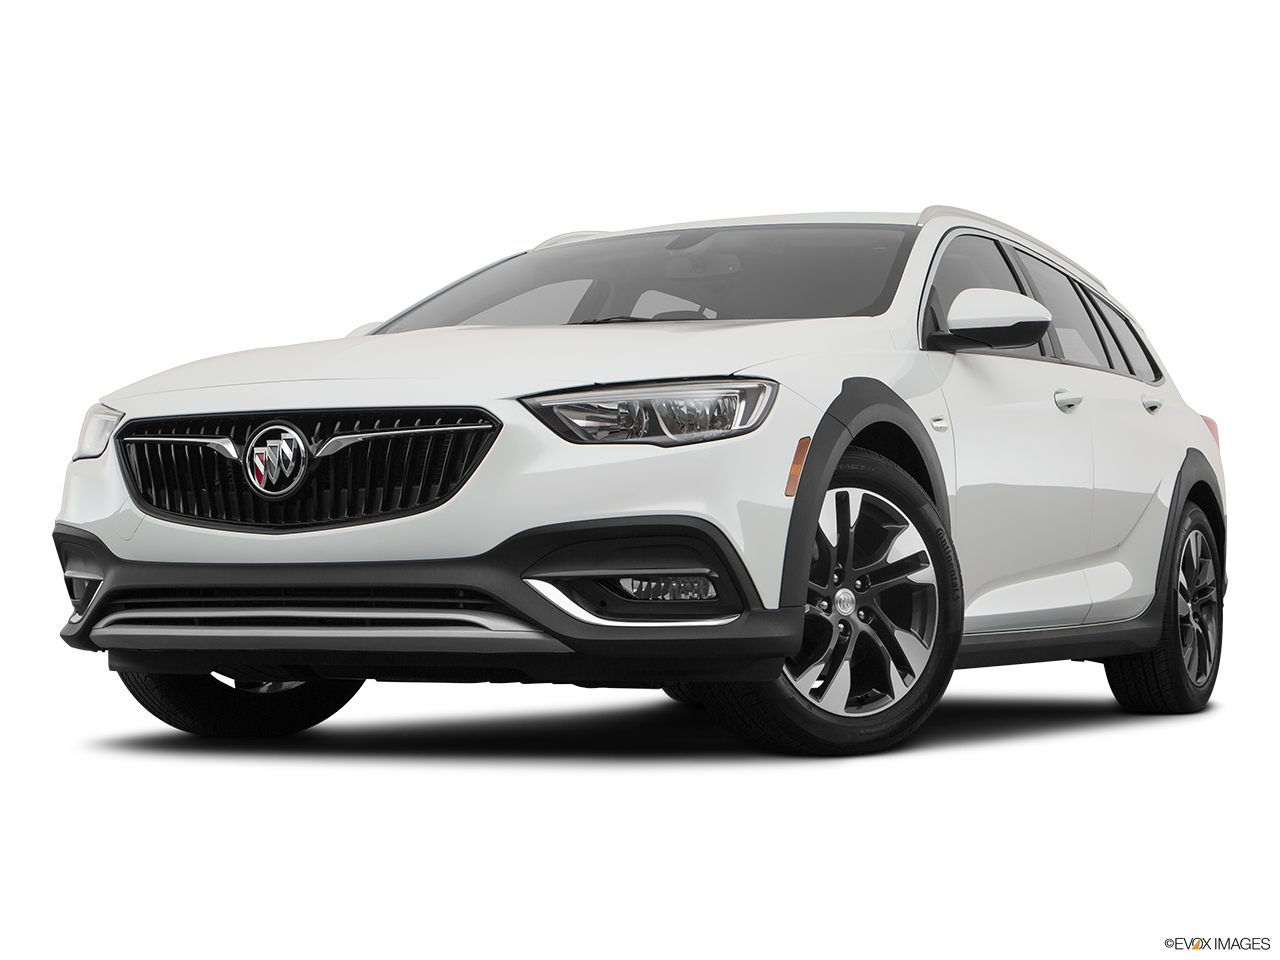 2019 Buick Regal TourX photo